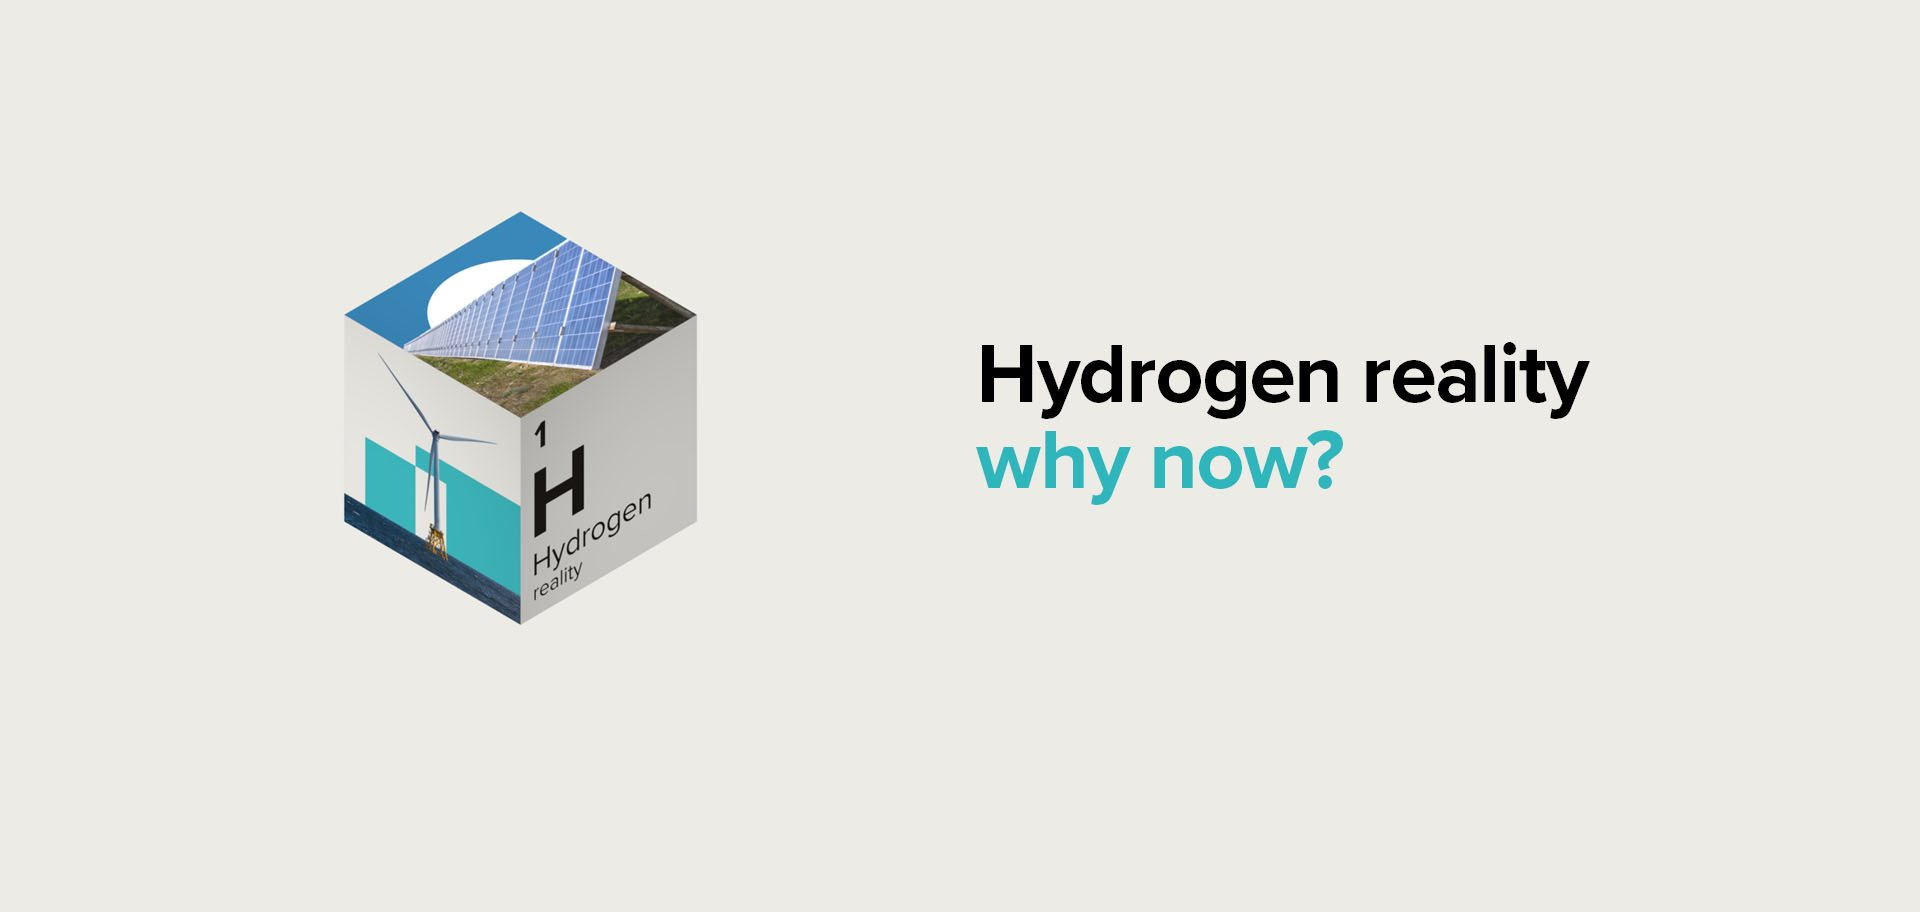 A graphic showing Hydrogen as the future of renewable energy